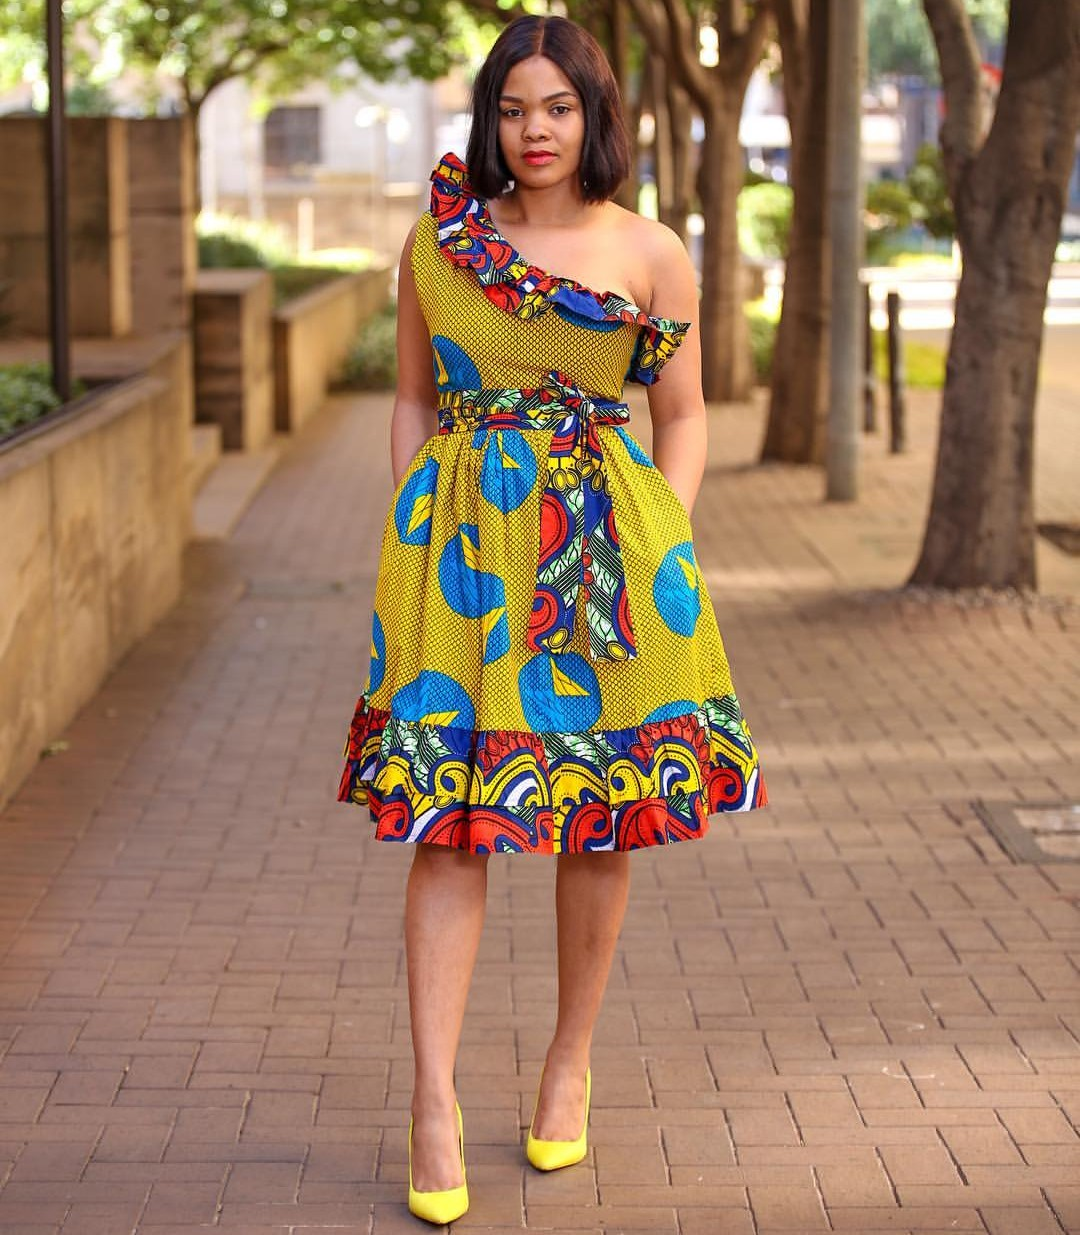 COLORFUL 2020 ANKARA MAXI DRESS TO COMPLETE YOUR ESPECIAL LOOK! 4